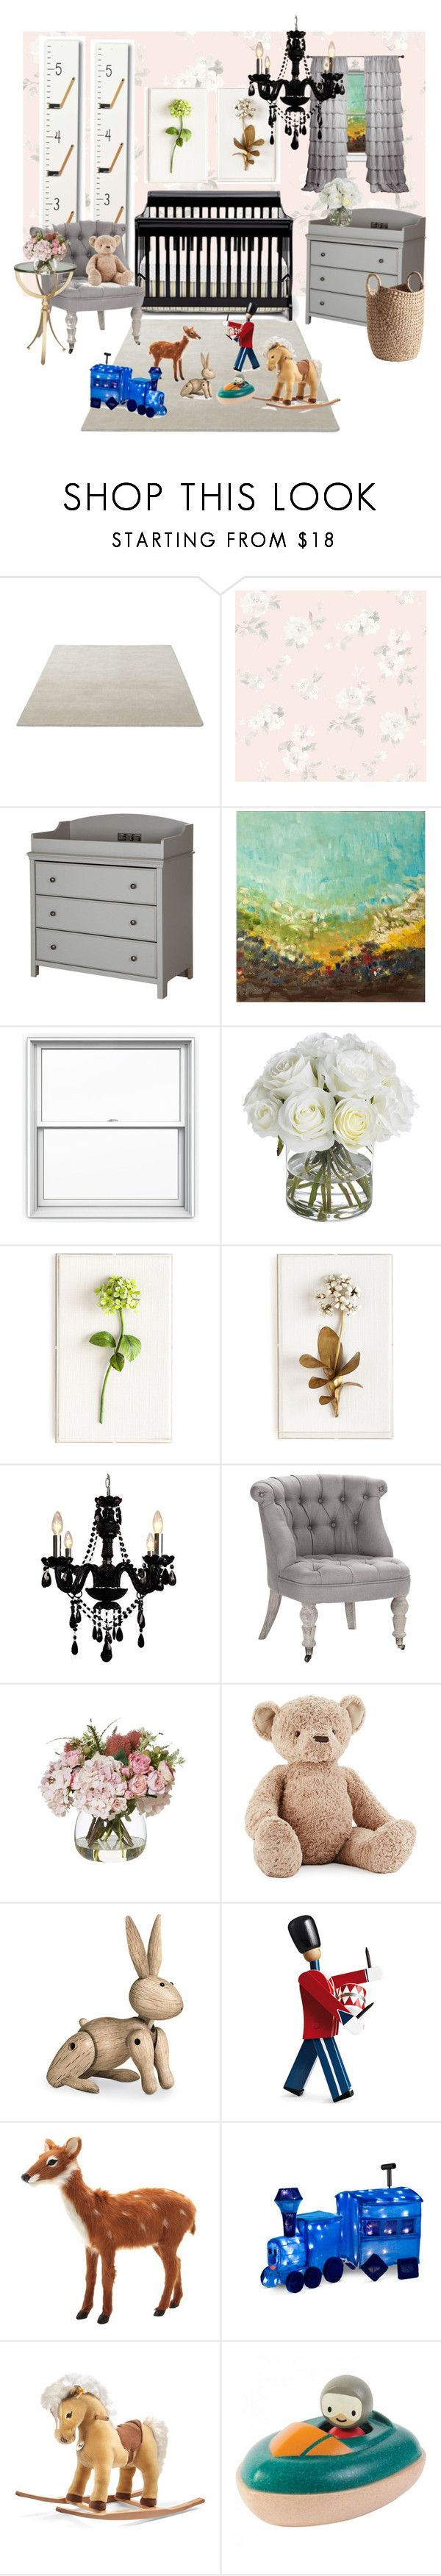 """""""Toys."""" by emiam ❤ liked on Polyvore featuring interior, interiors, interior design, home, home decor, interior decorating, Captiva, South Shore, Diane James and Tommy Mitchell"""